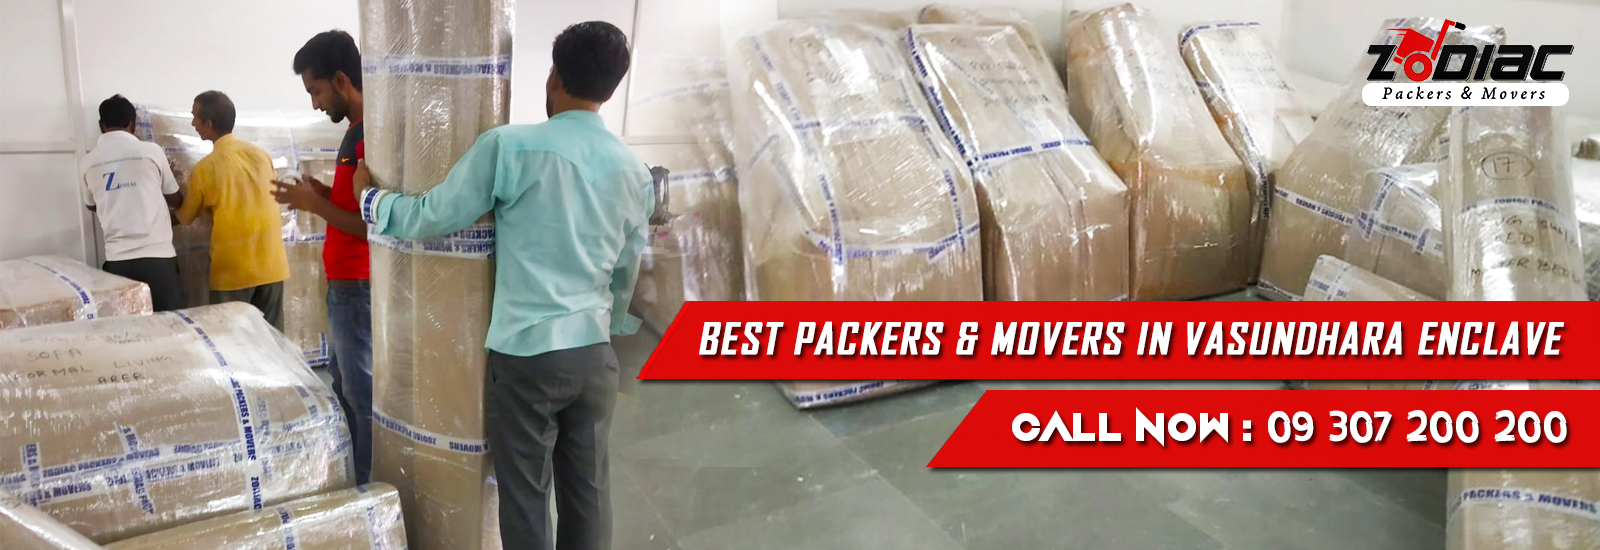 Packers and Movers in Vasundhara Enclave